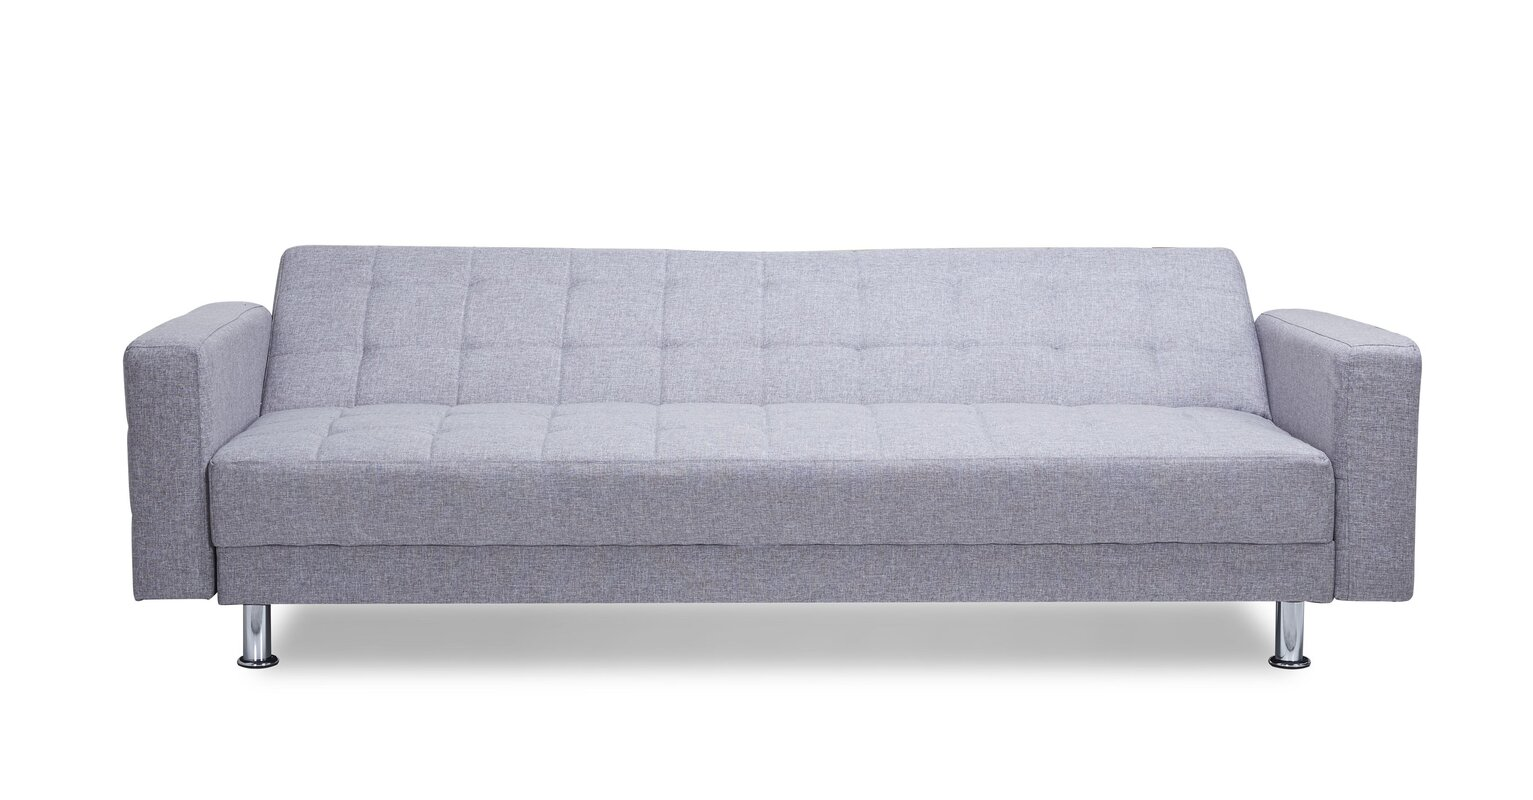 Spirit Lake Convertible Sleeper Sofa